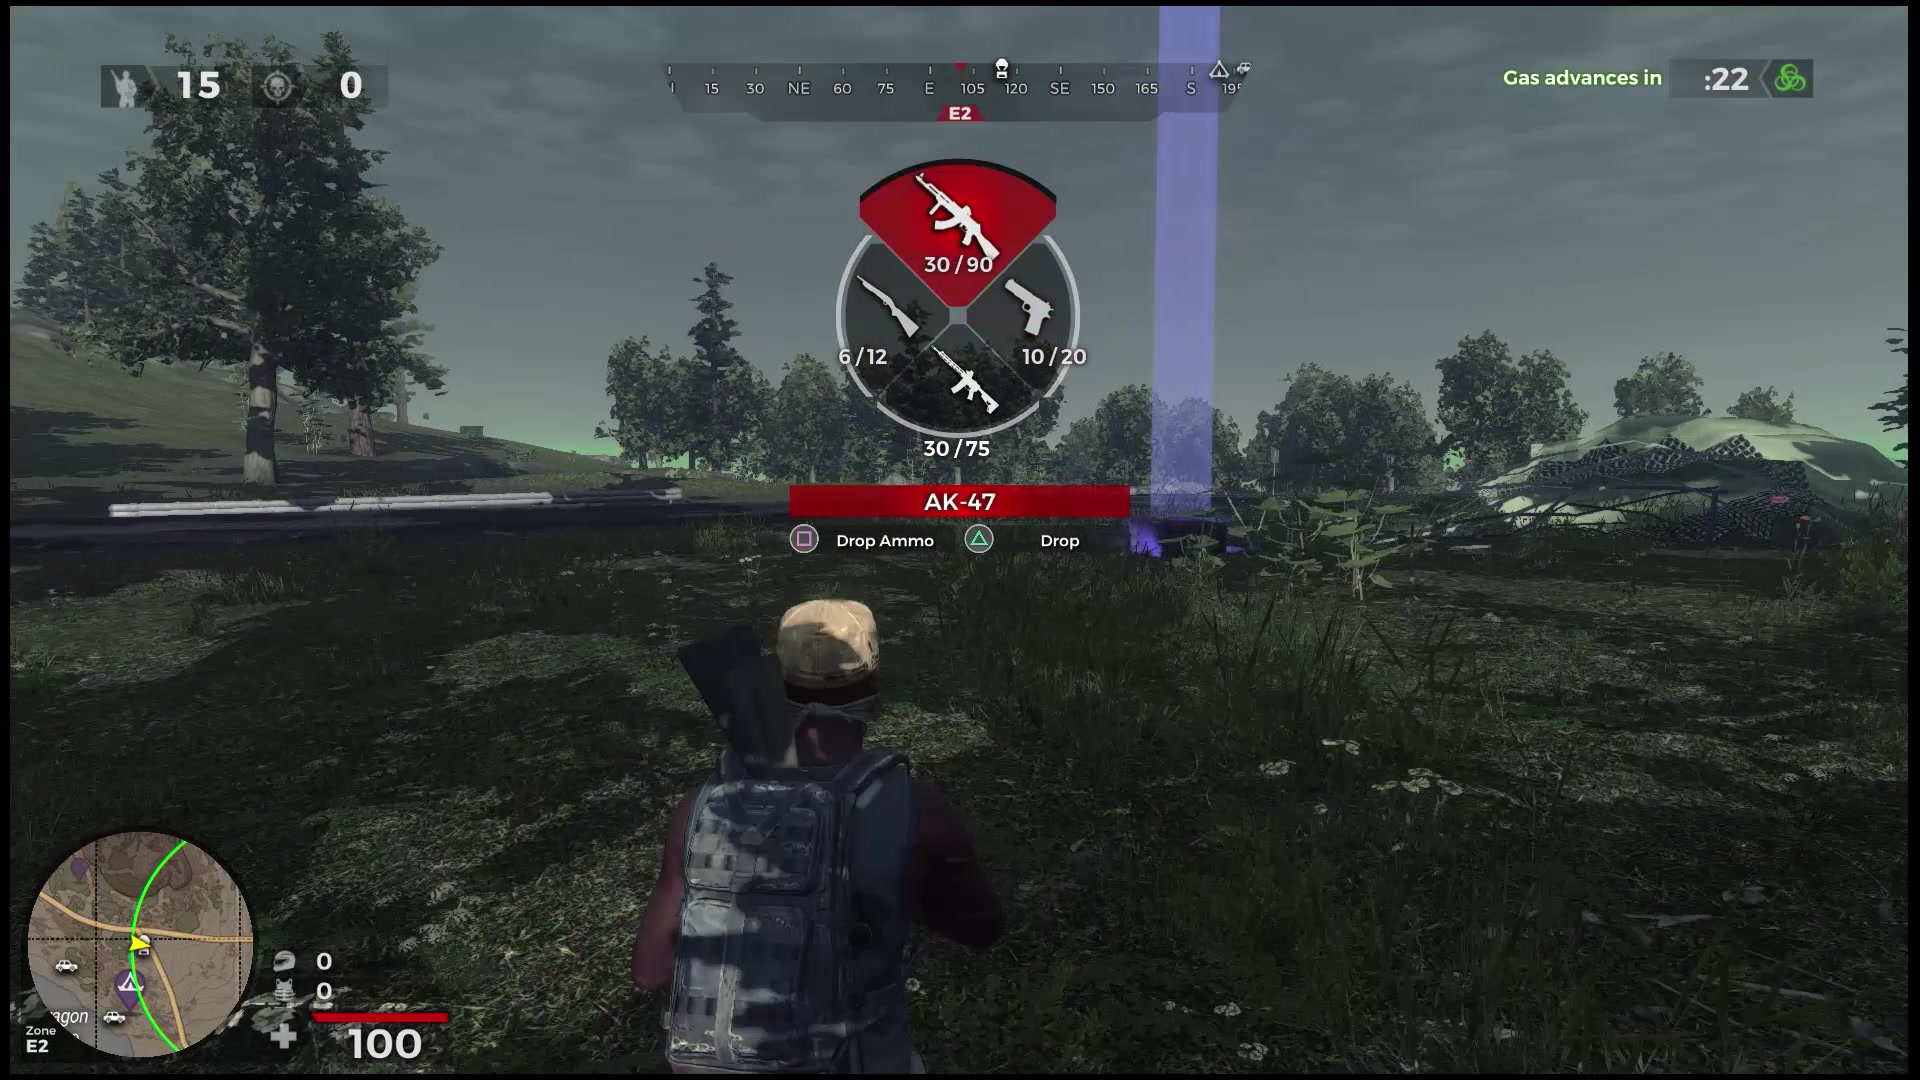 h1z1 open beta is